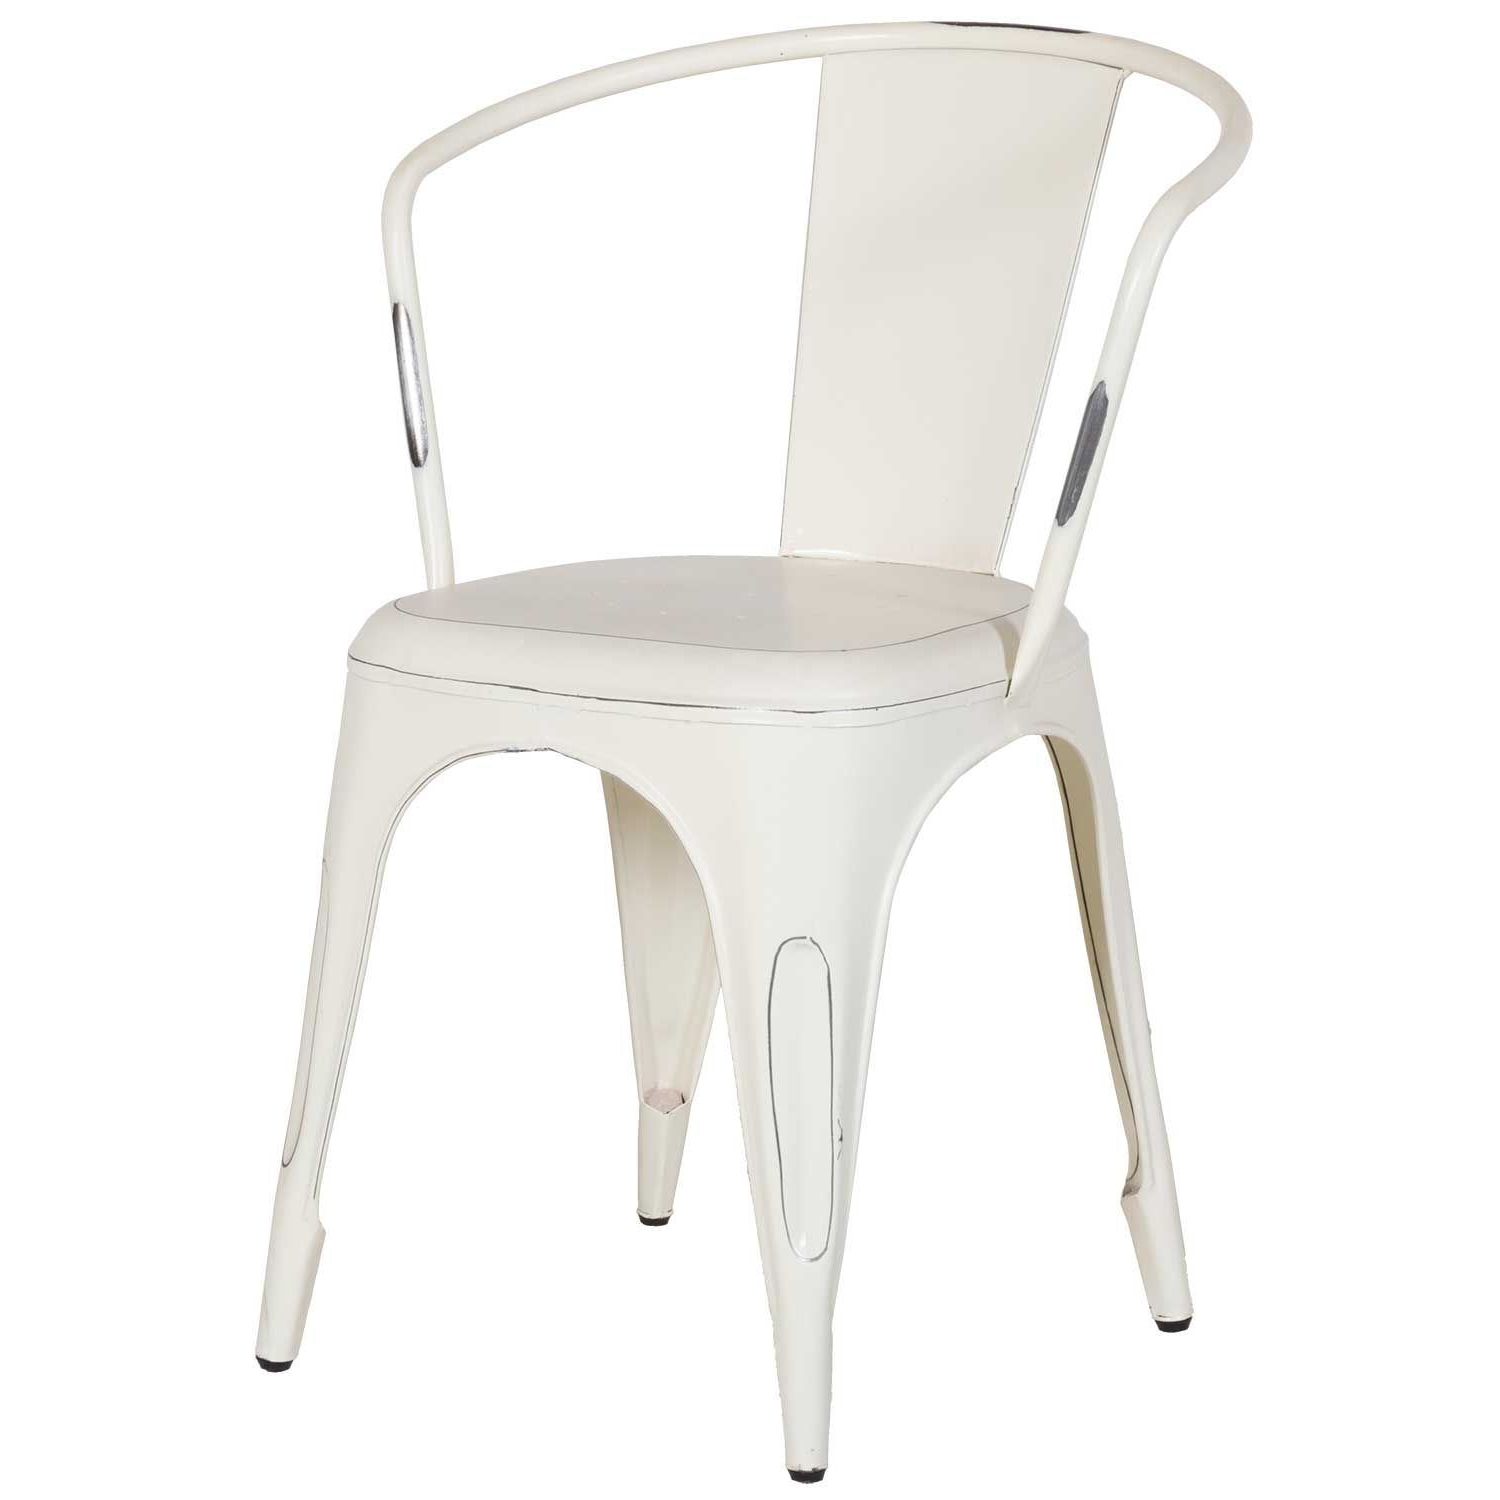 Stylish Dining Chairs Intended For Fashionable Vintage White Retro Cafe Arm Chair Sie A1042W (View 15 of 25)